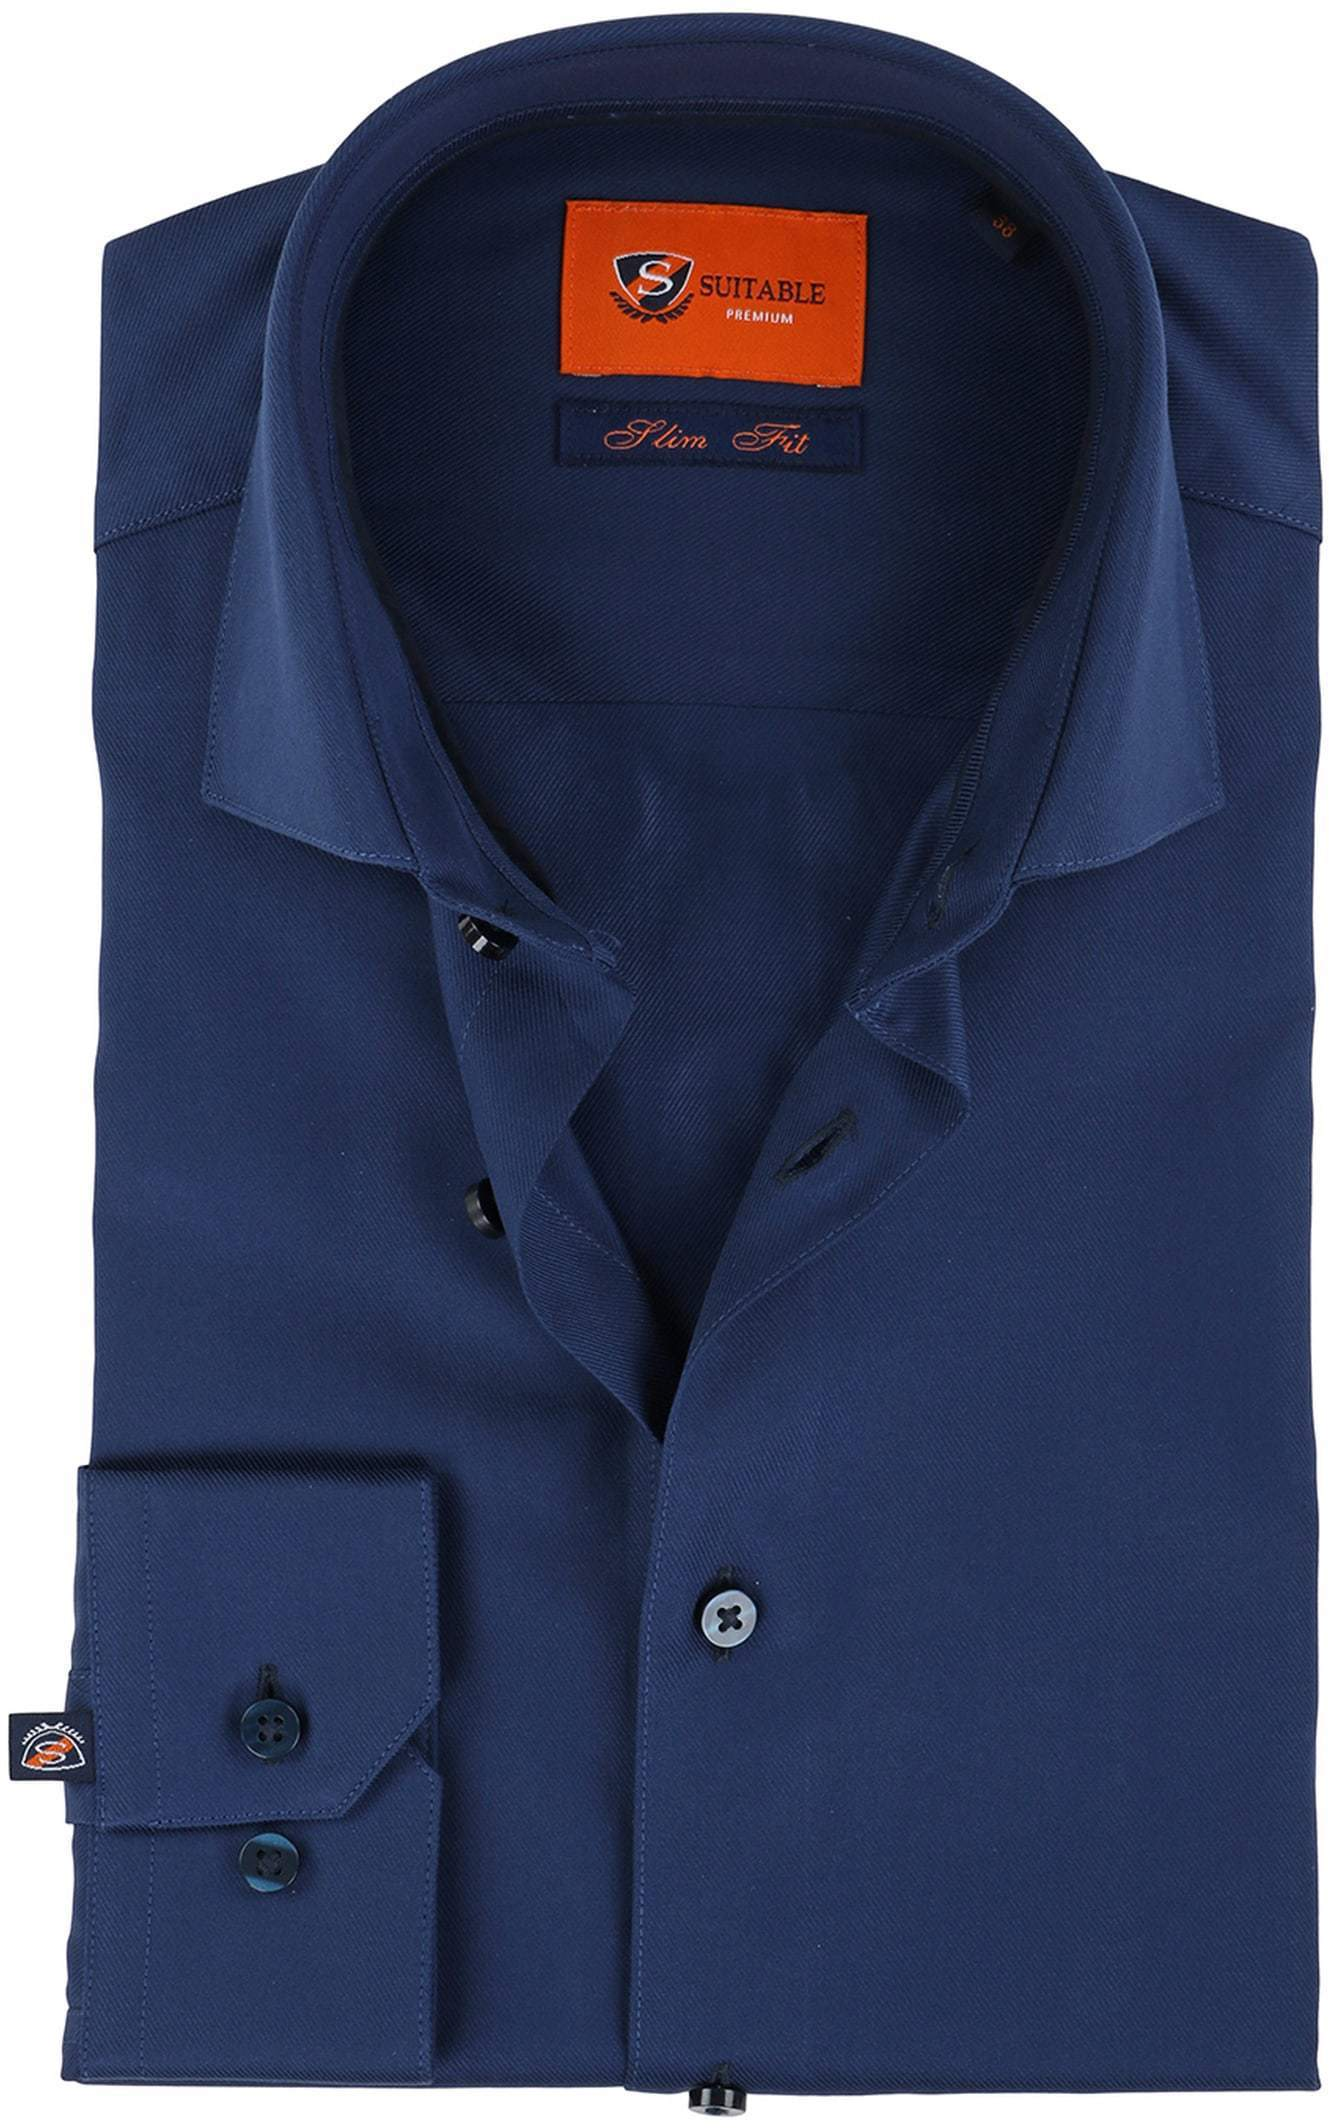 Suitable Shirt Navy Twill DR-05 foto 0